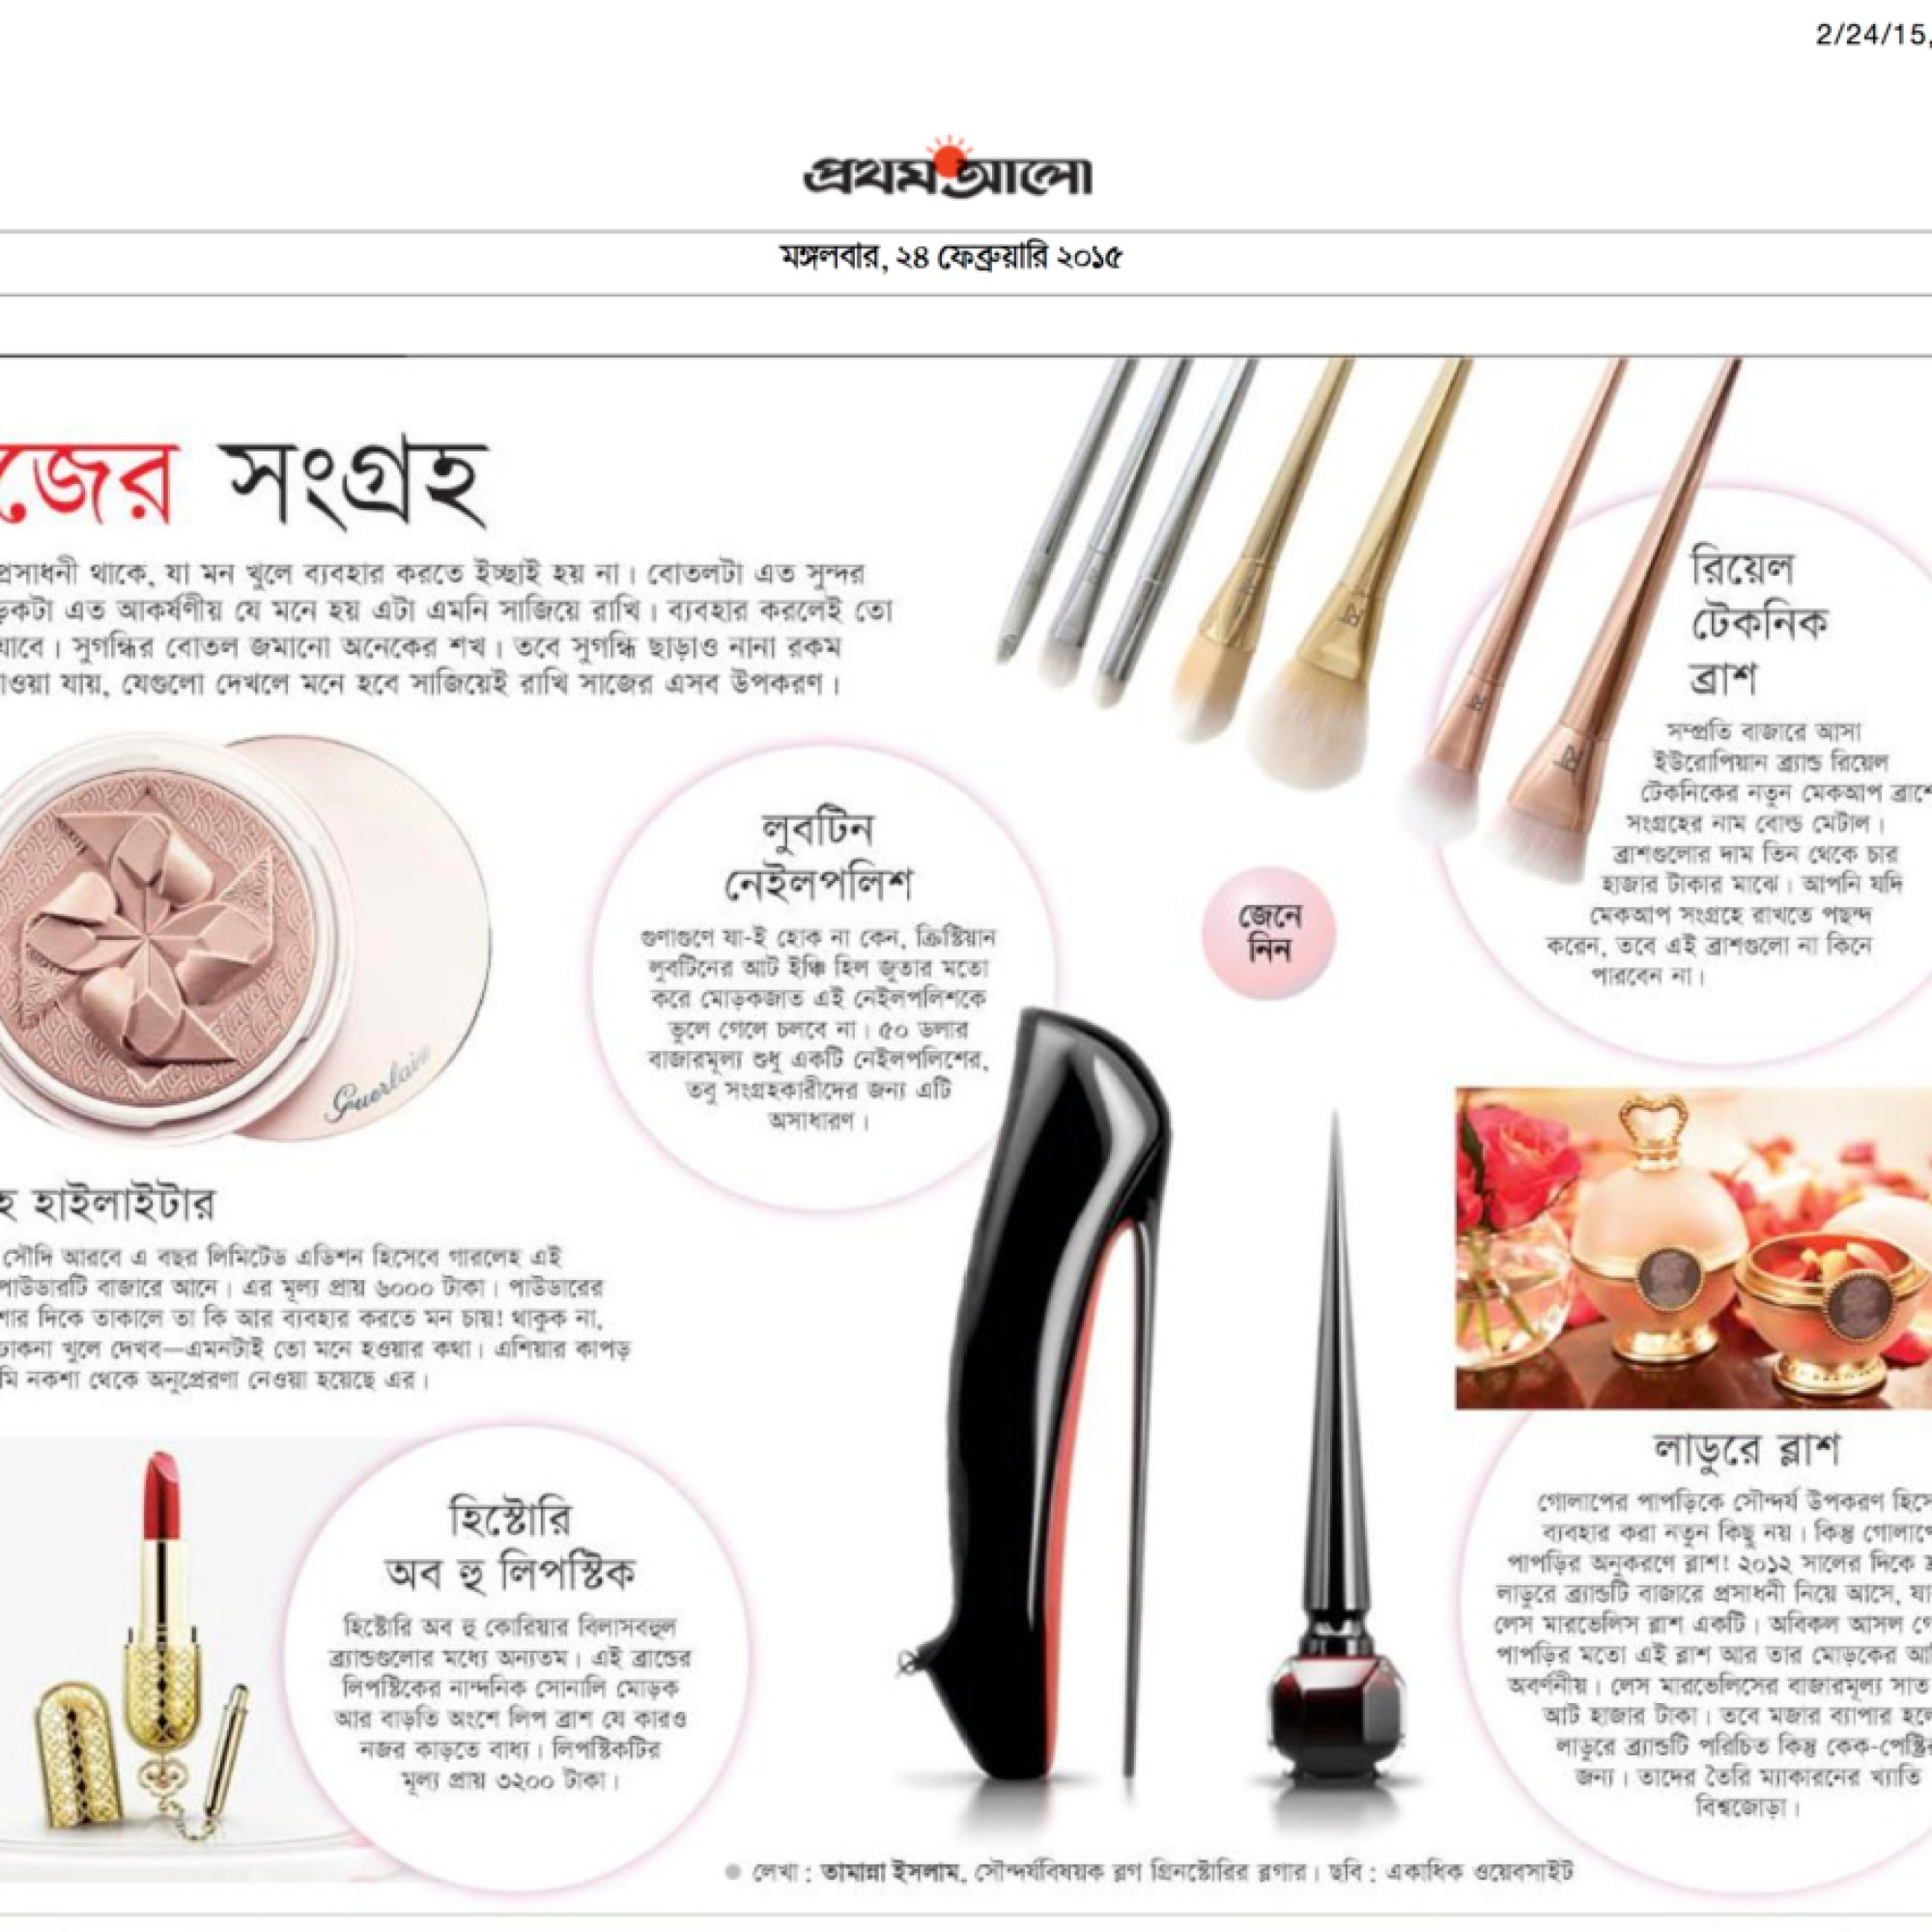 Exclusives for Makeup Collectors - Editorial By Tamanna, GreenStory for Prothom Alo Lifestyle